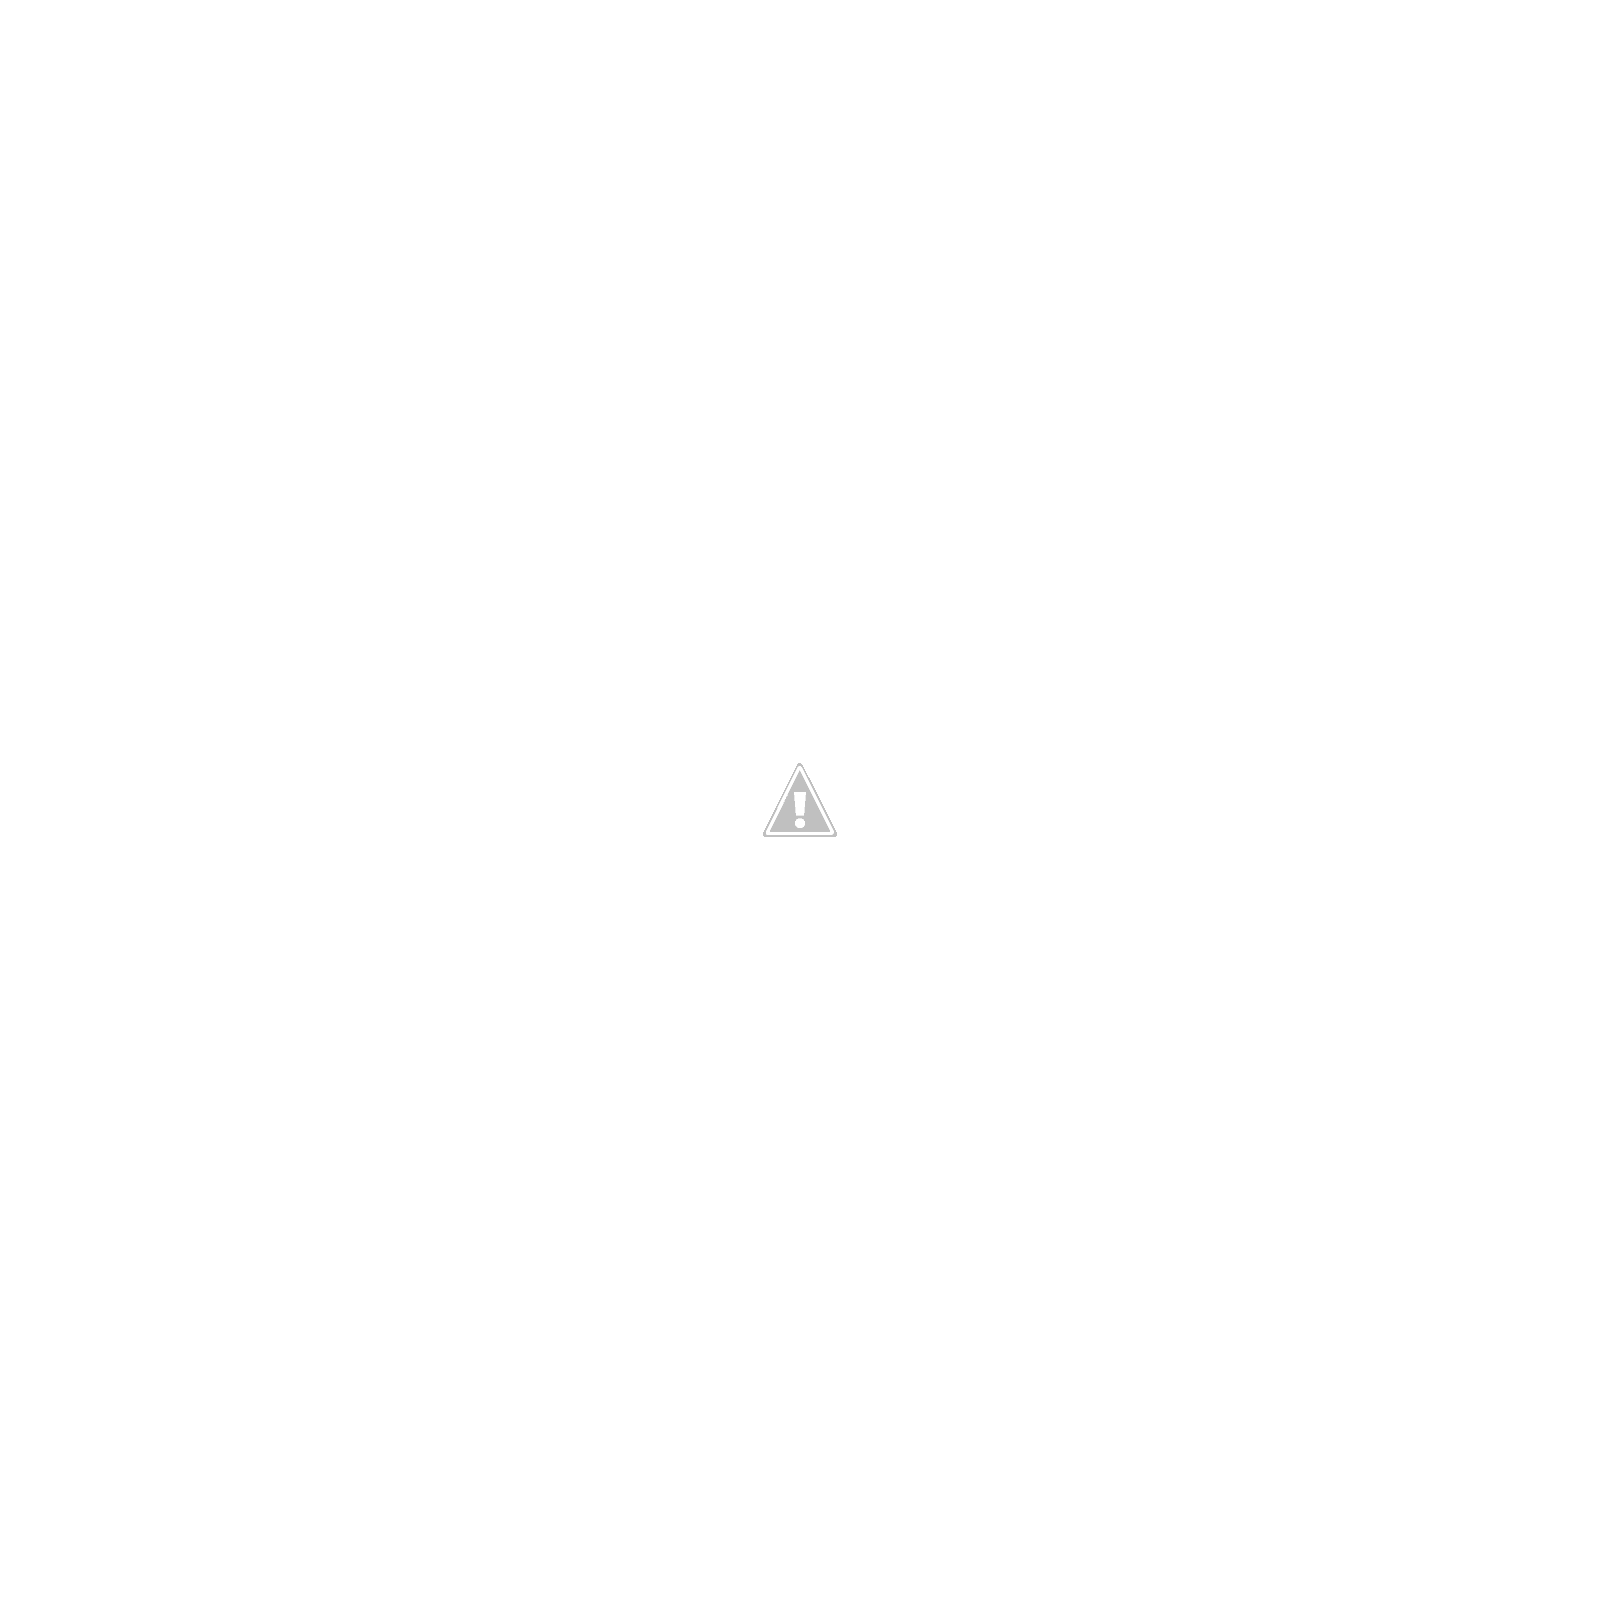 What Lies at the End - Chapter 21